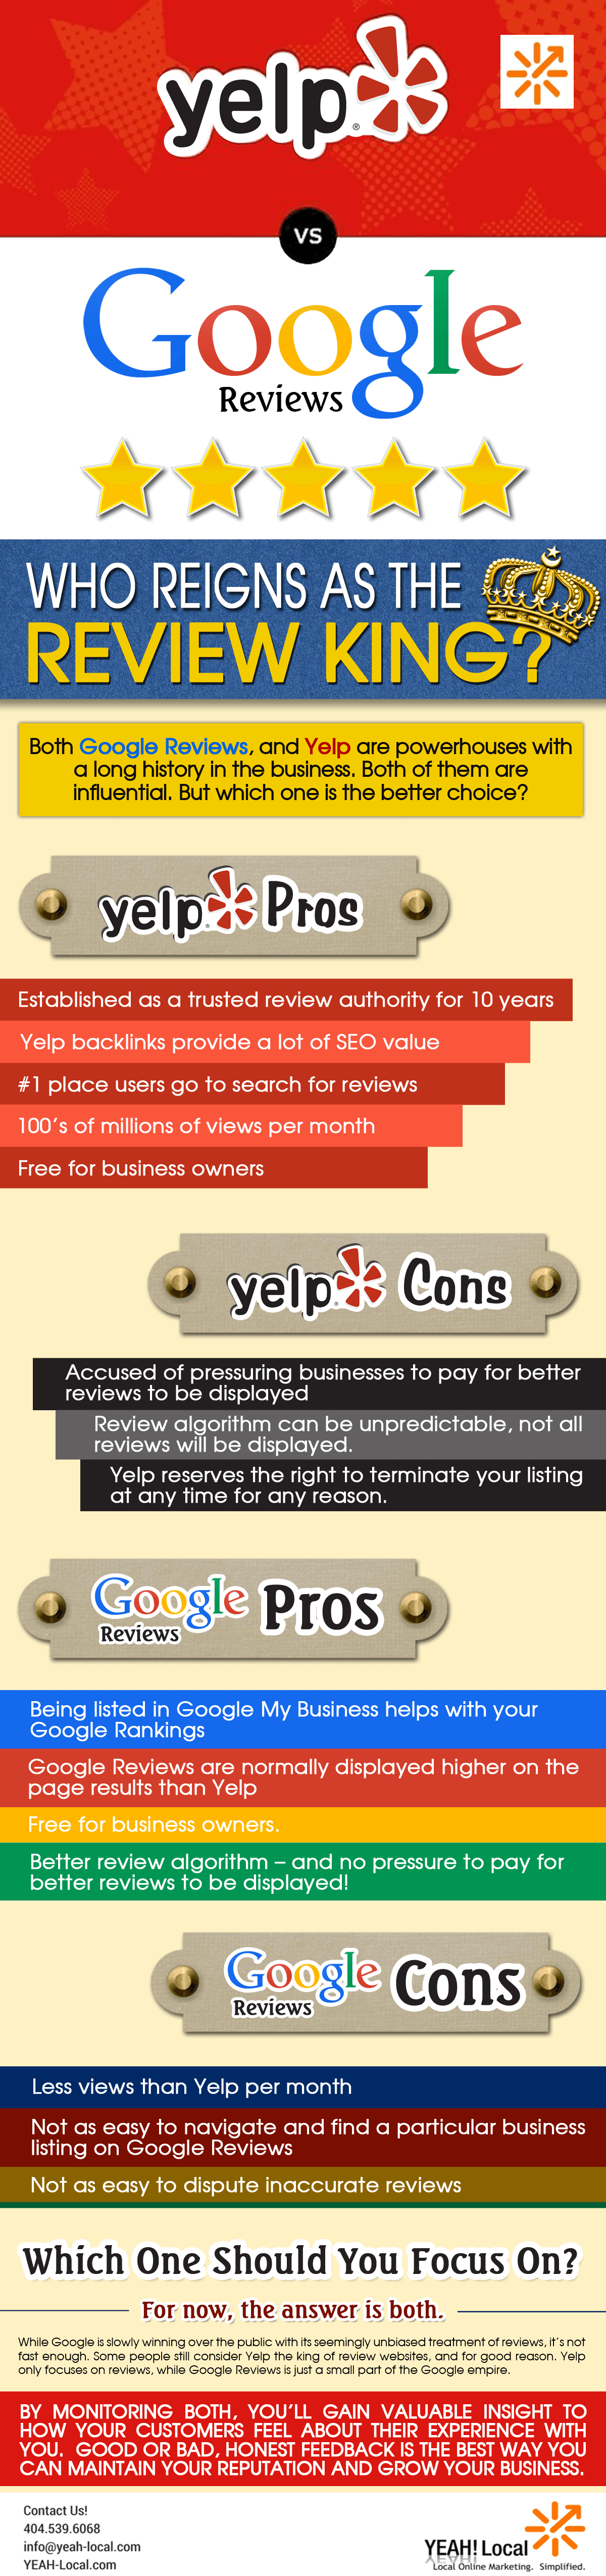 Yelp vs Google Reviews: Who Reigns as the Review King?